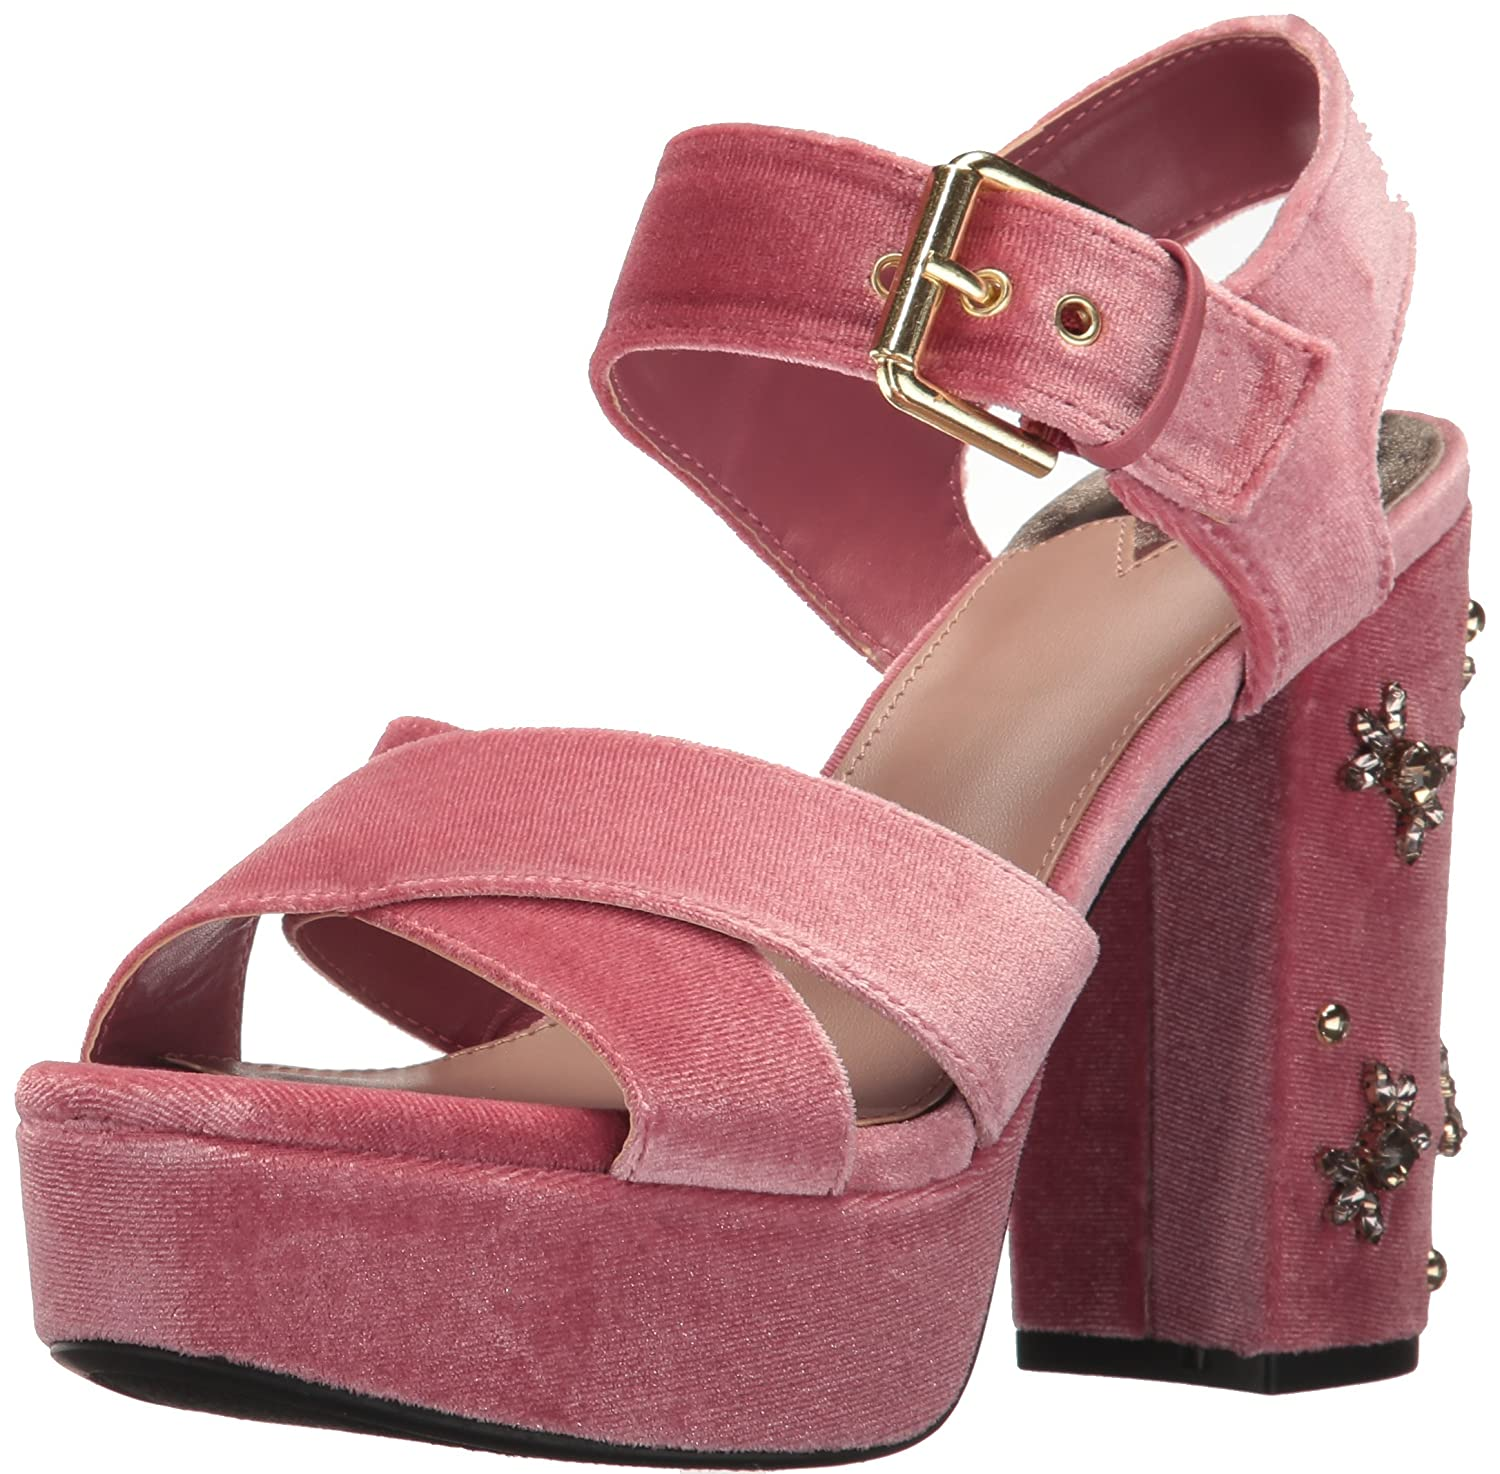 b141c1616a43b1 Circus by Sam Edelman Women s Morgan Platform  Amazon.com.au  Fashion